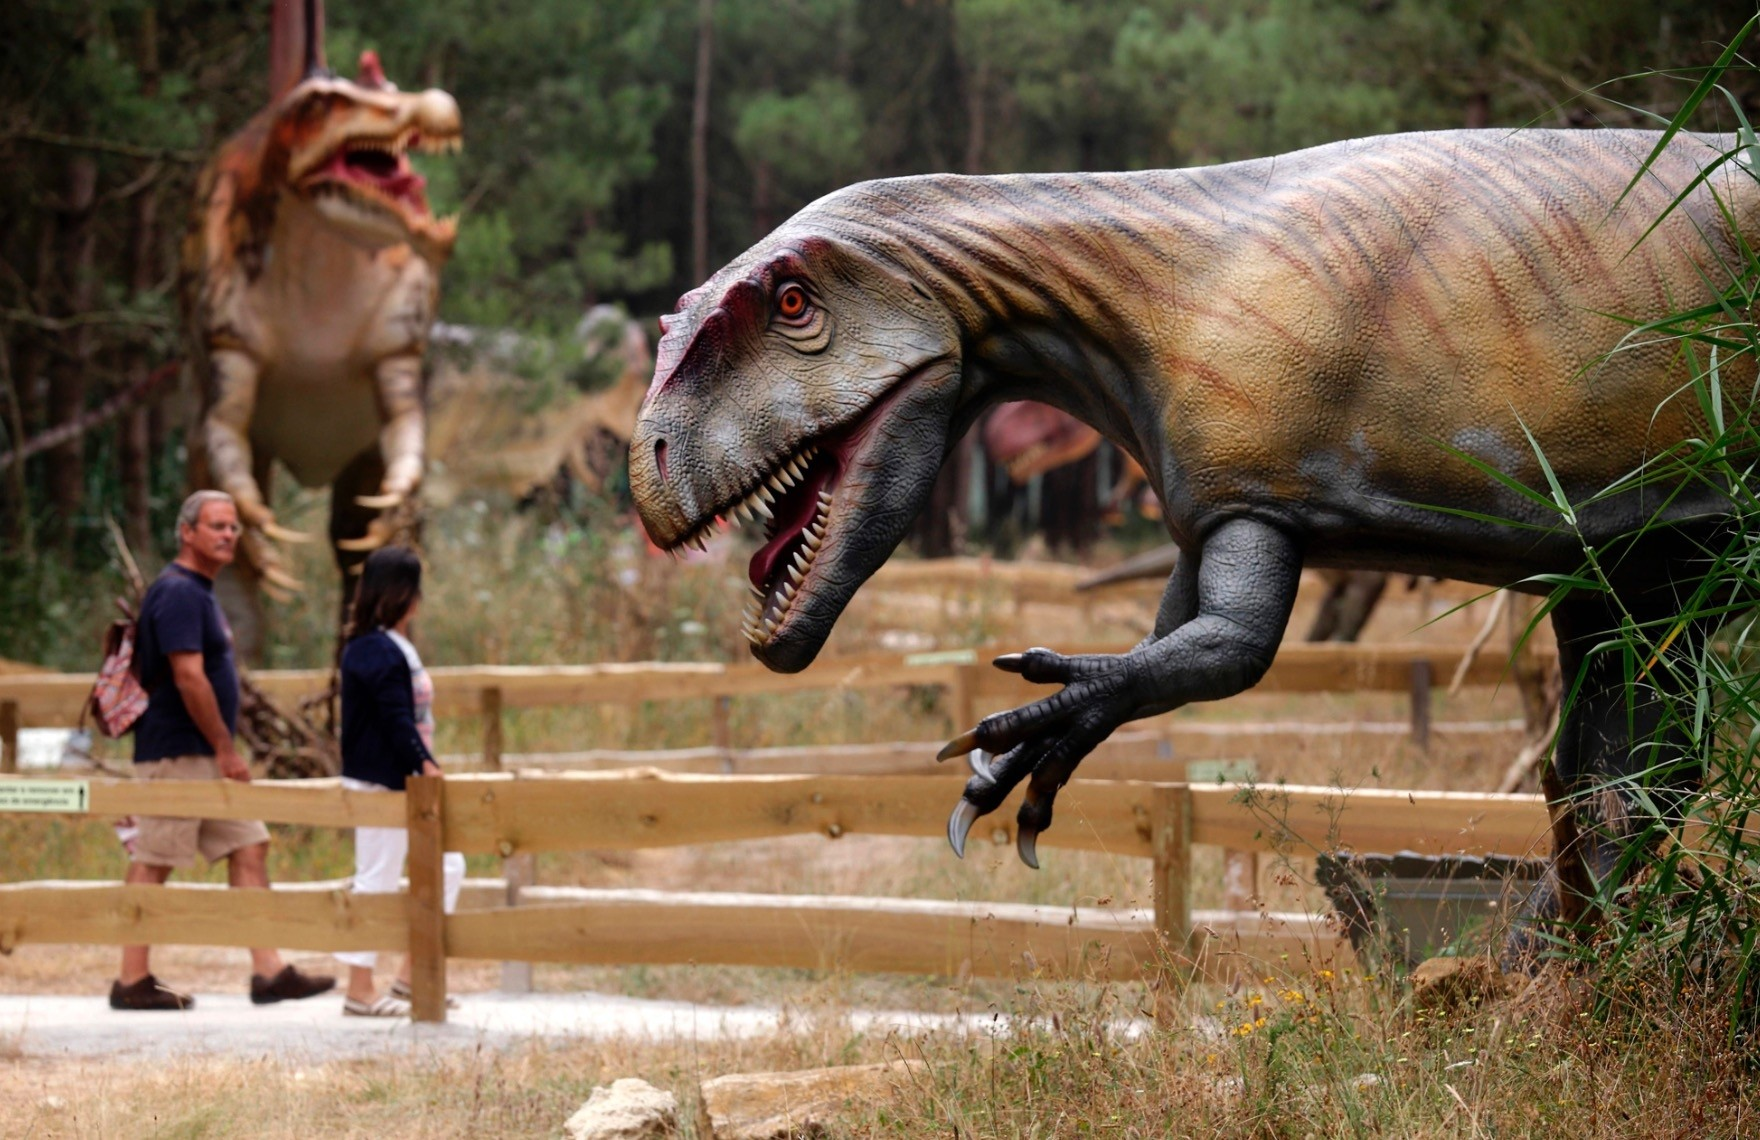 People visit the Dino Park, an outdoor museum with more than 120 models of dinosaurs, in Lourinha.